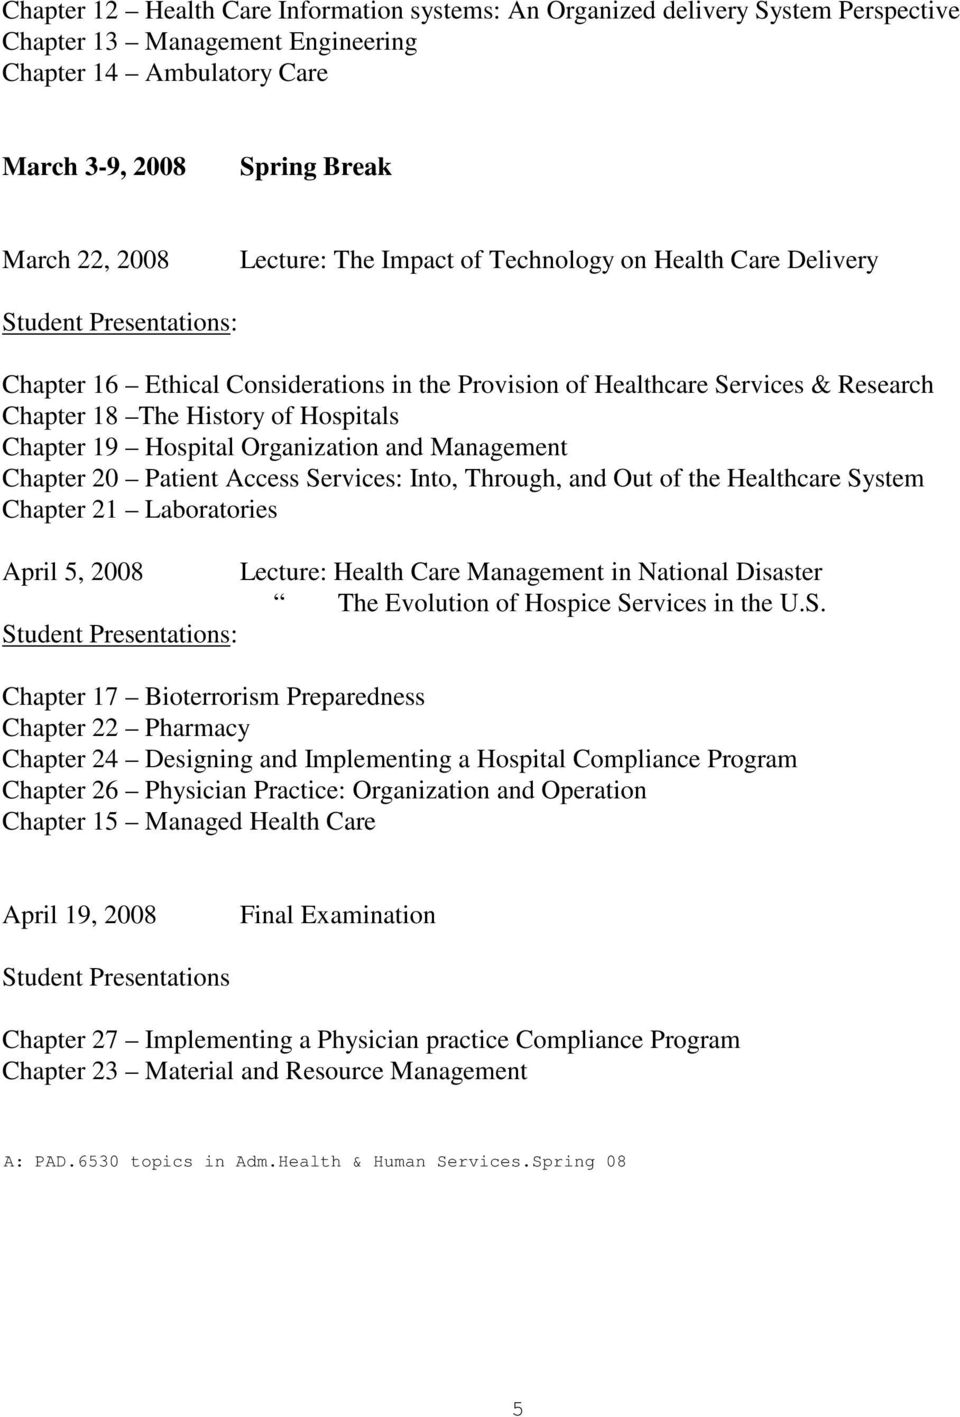 Chapter 20 Patient Access Services: Int, Thrugh, and Out f the Healthcare System Chapter 21 Labratries April 5, 2008 Lecture: Health Care Management in Natinal Disaster The Evlutin f Hspice Services